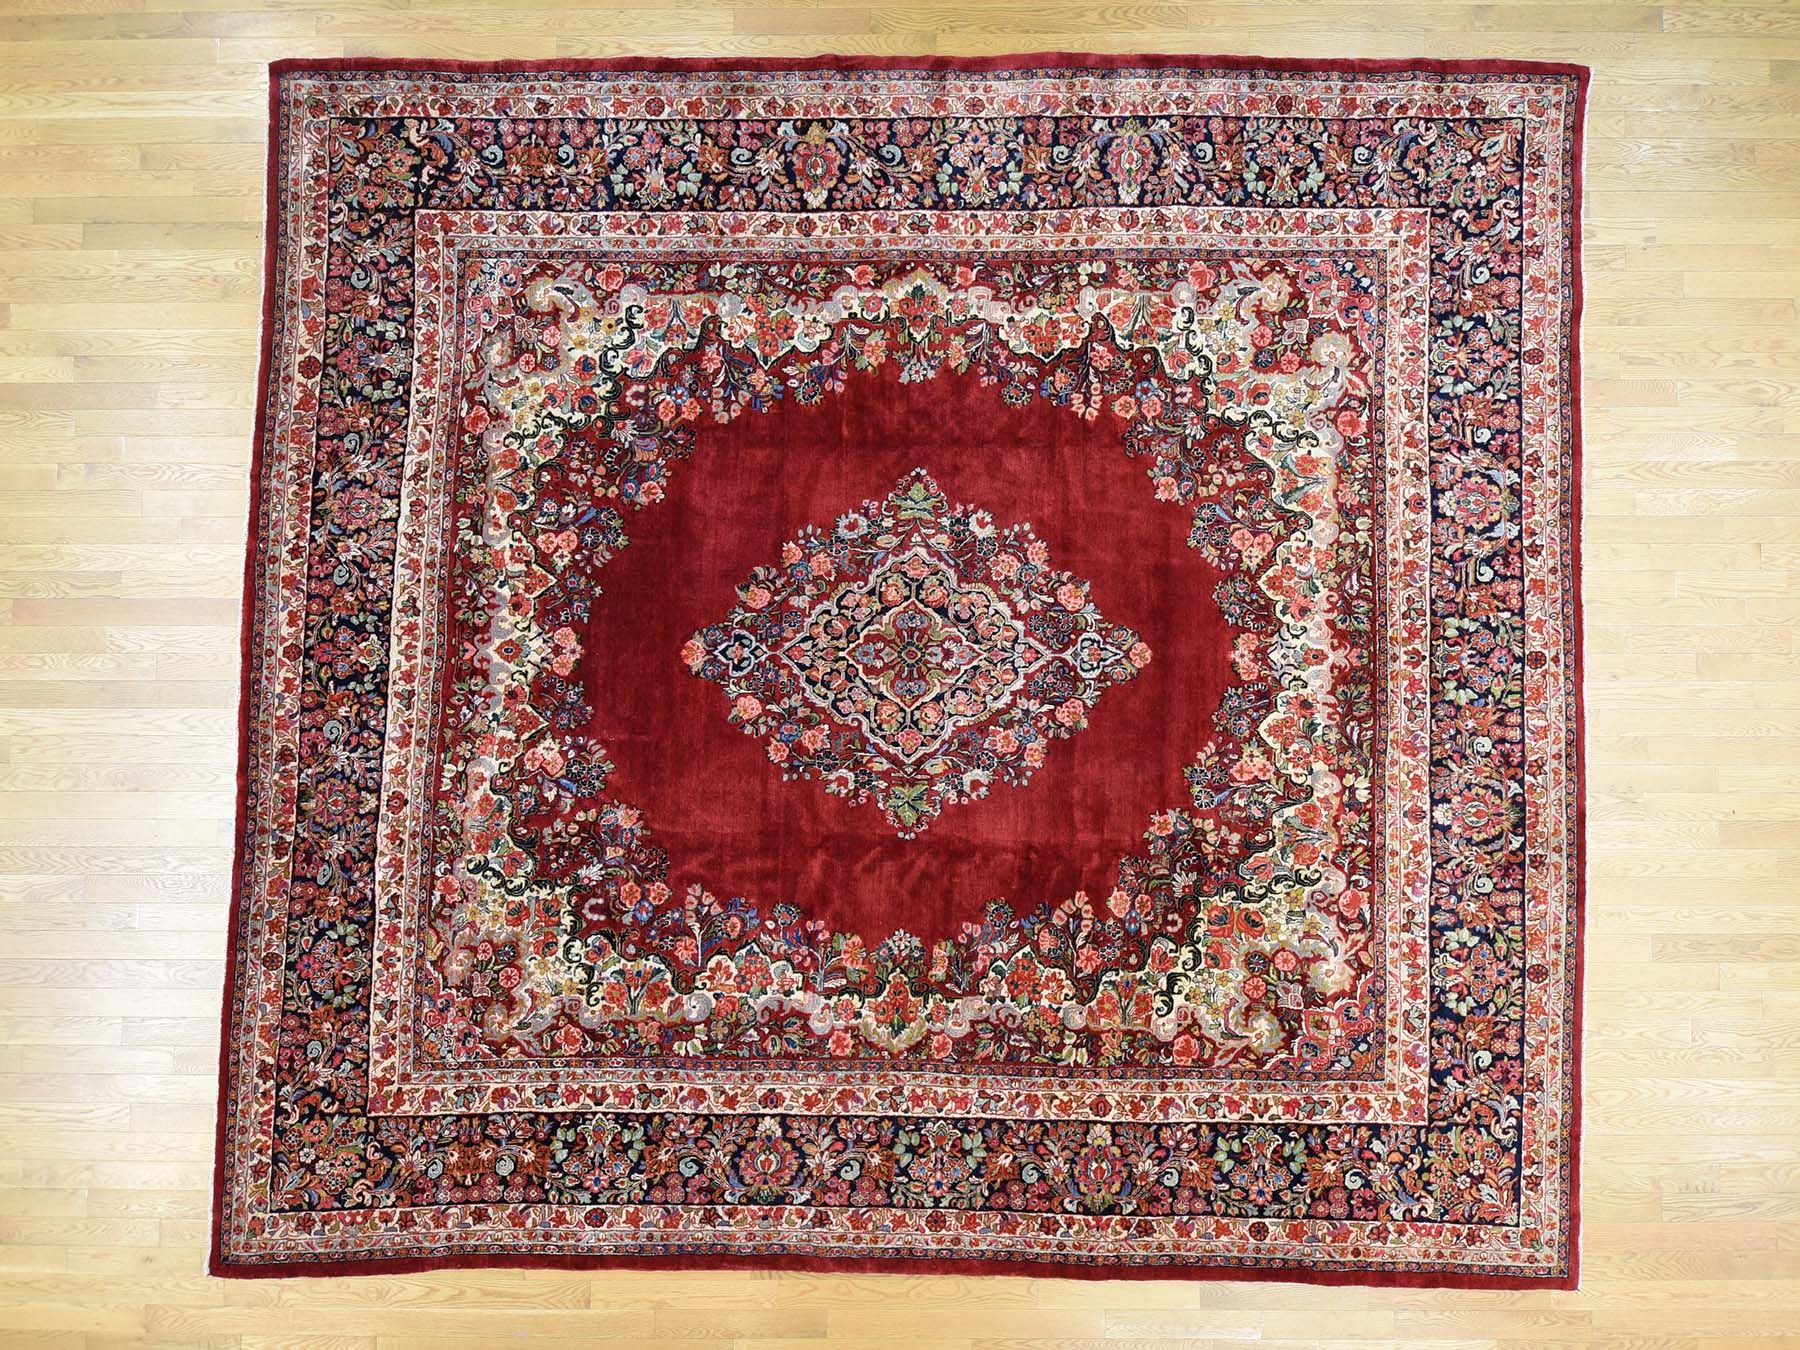 12 X13 4 Hand Knotted Square Antique Persian Sarouk Oriental Rug Moac7db6 Orientalrugs Interior Rugs Carpet Rug Sale R Rug Shopping Big Rugs Rug Store